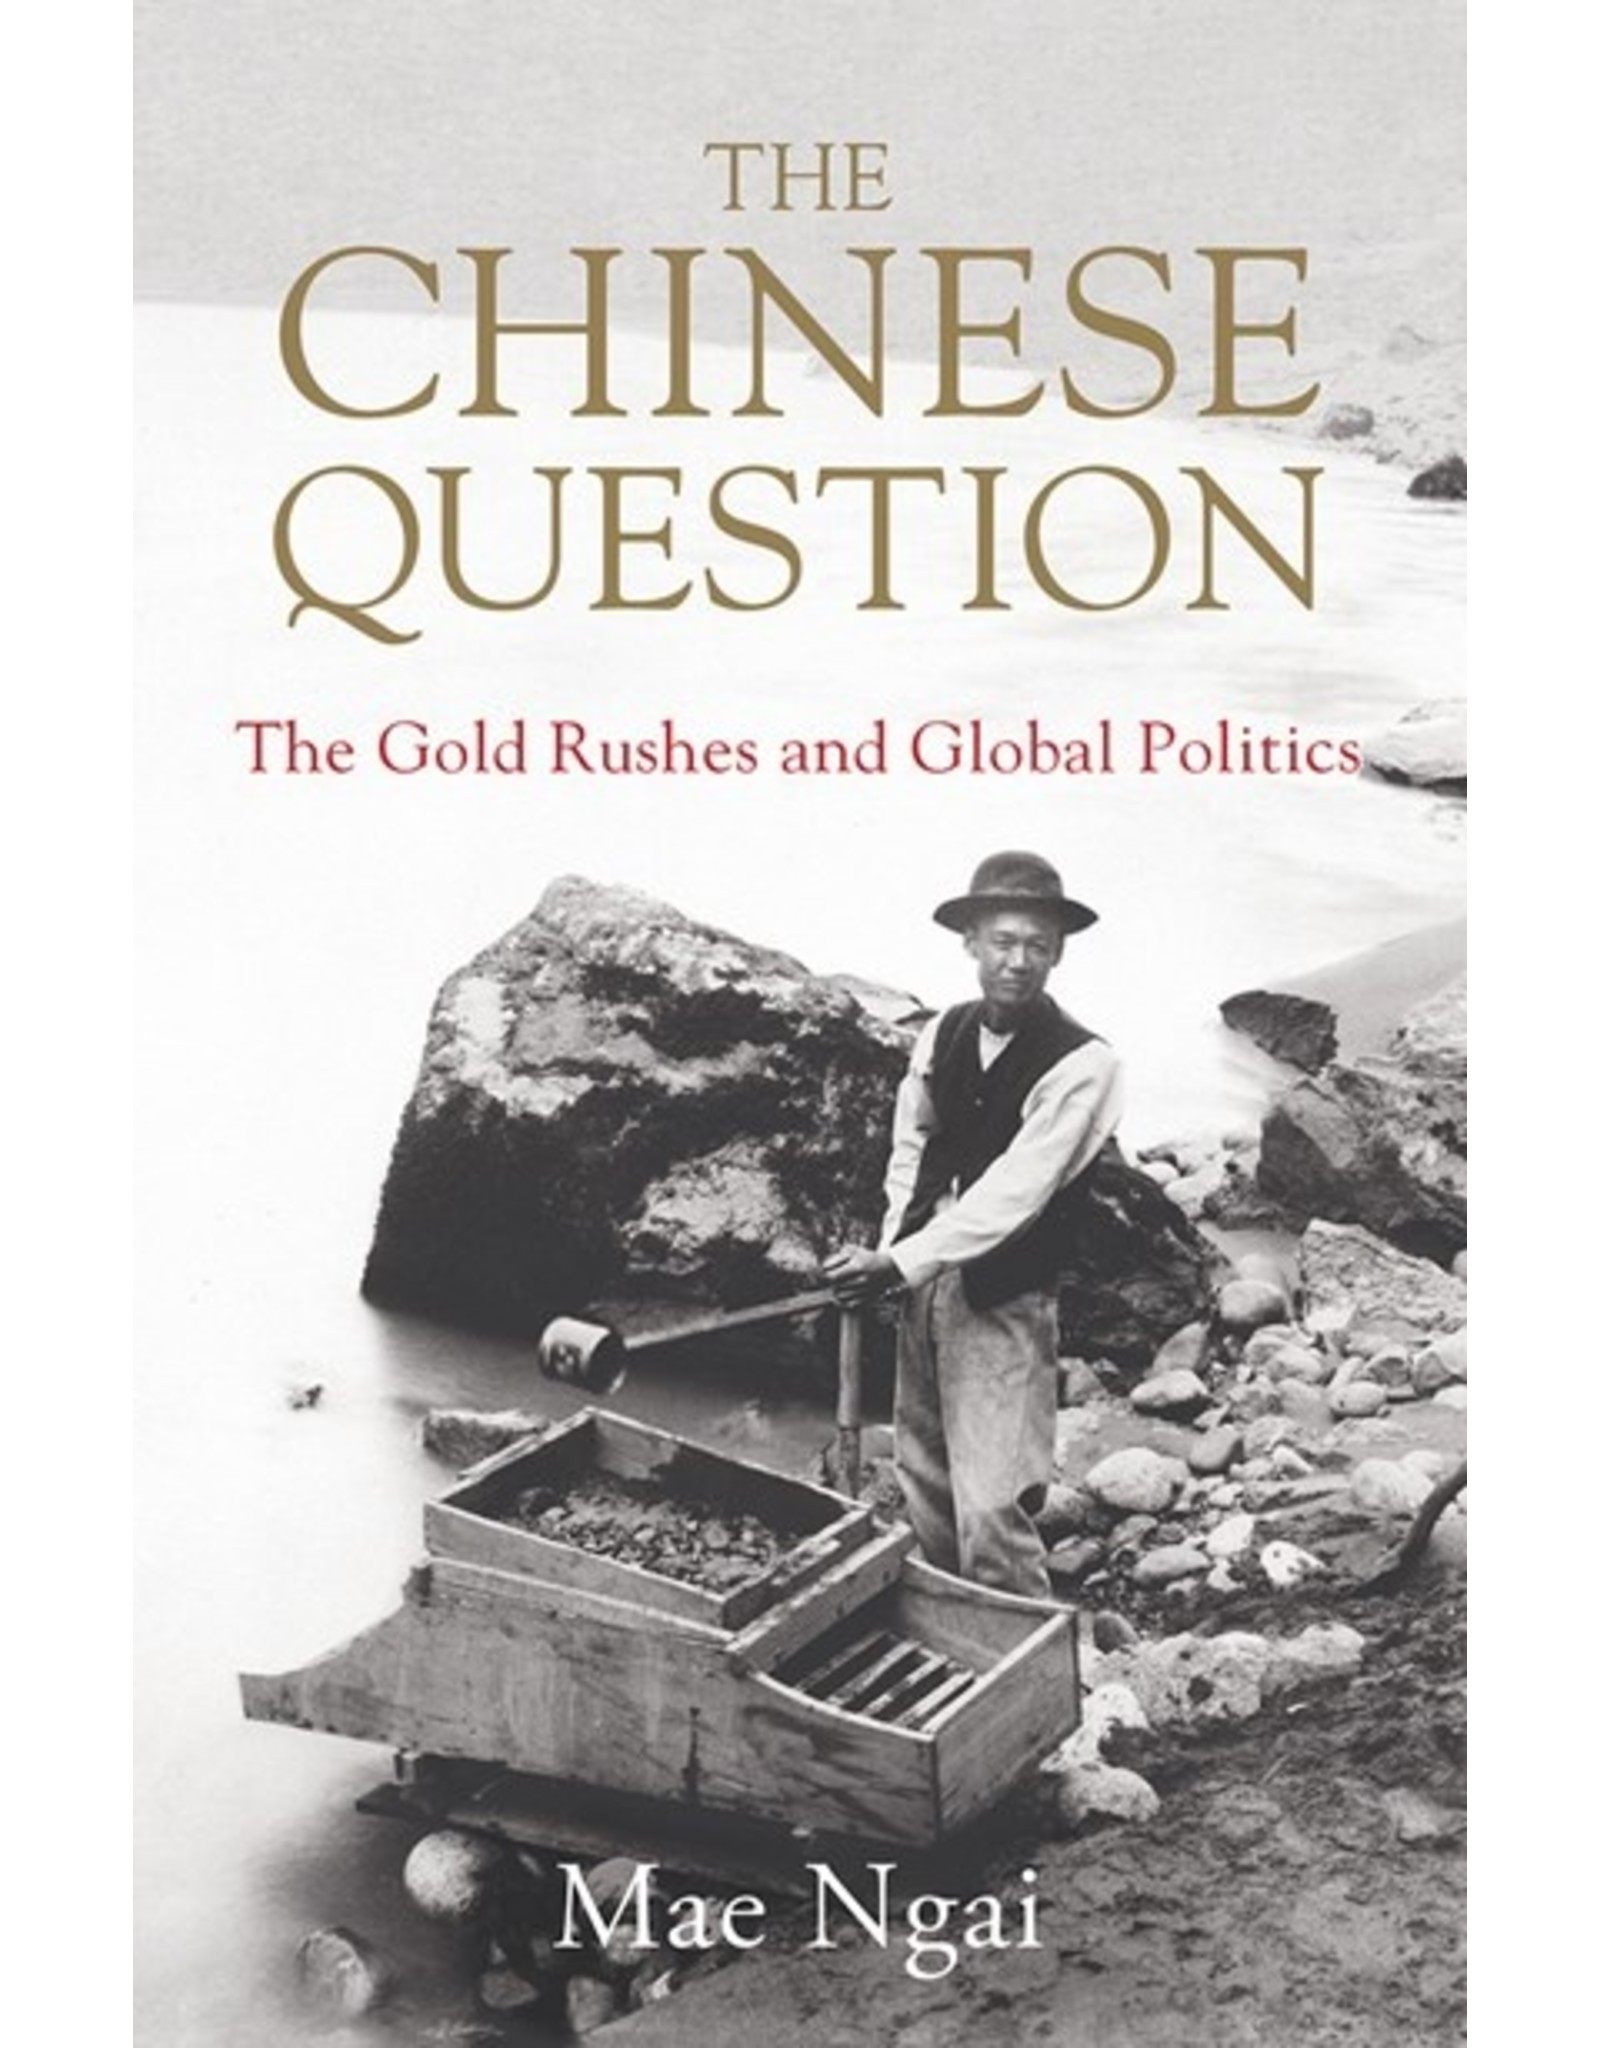 Books The Chinese Question: The Gold Rushes and Global Politics by Mae Ngai